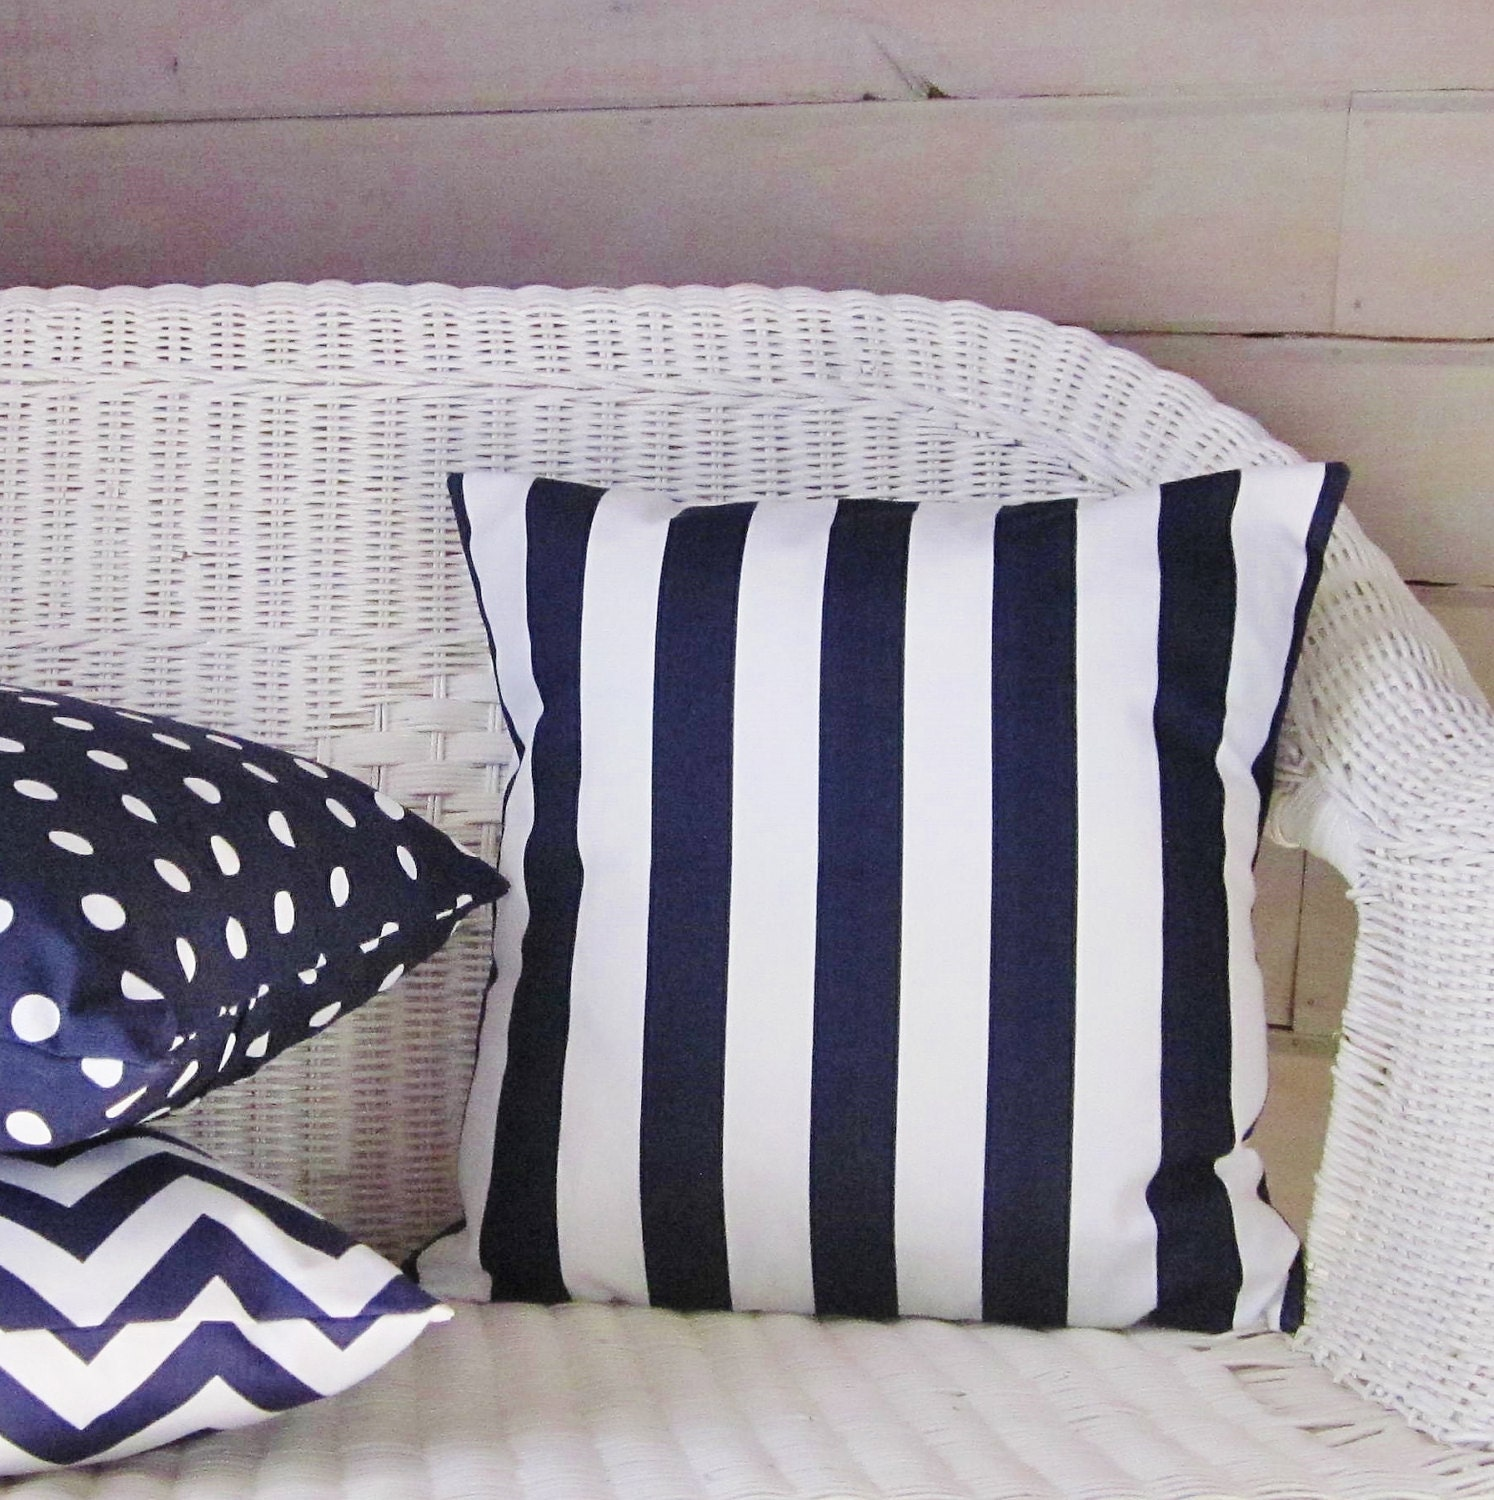 Blue Striped Throw Pillow Cover : Navy Blue Stripe Pillow Cover Decorative Throw Accent Indigo